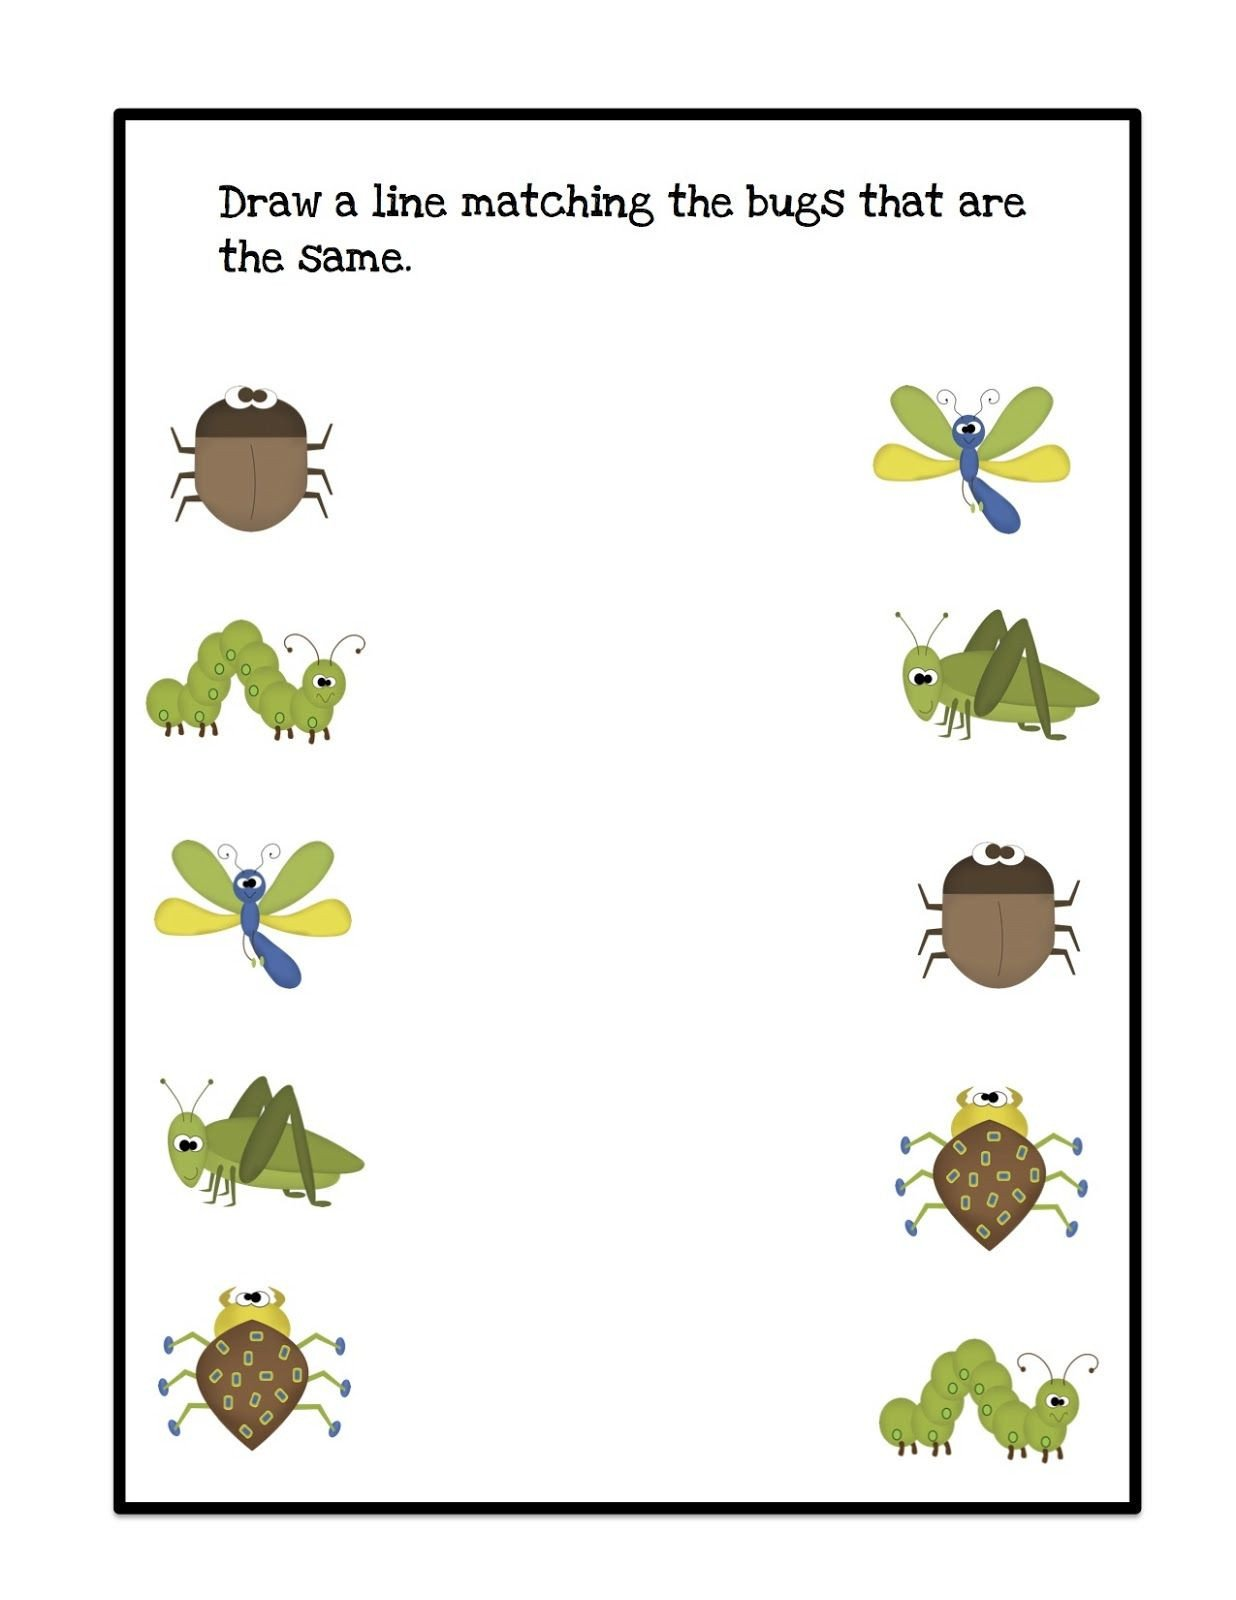 Insect Worksheets for Preschoolers Bugs Draw Lines 1 236—1 600 Pixels